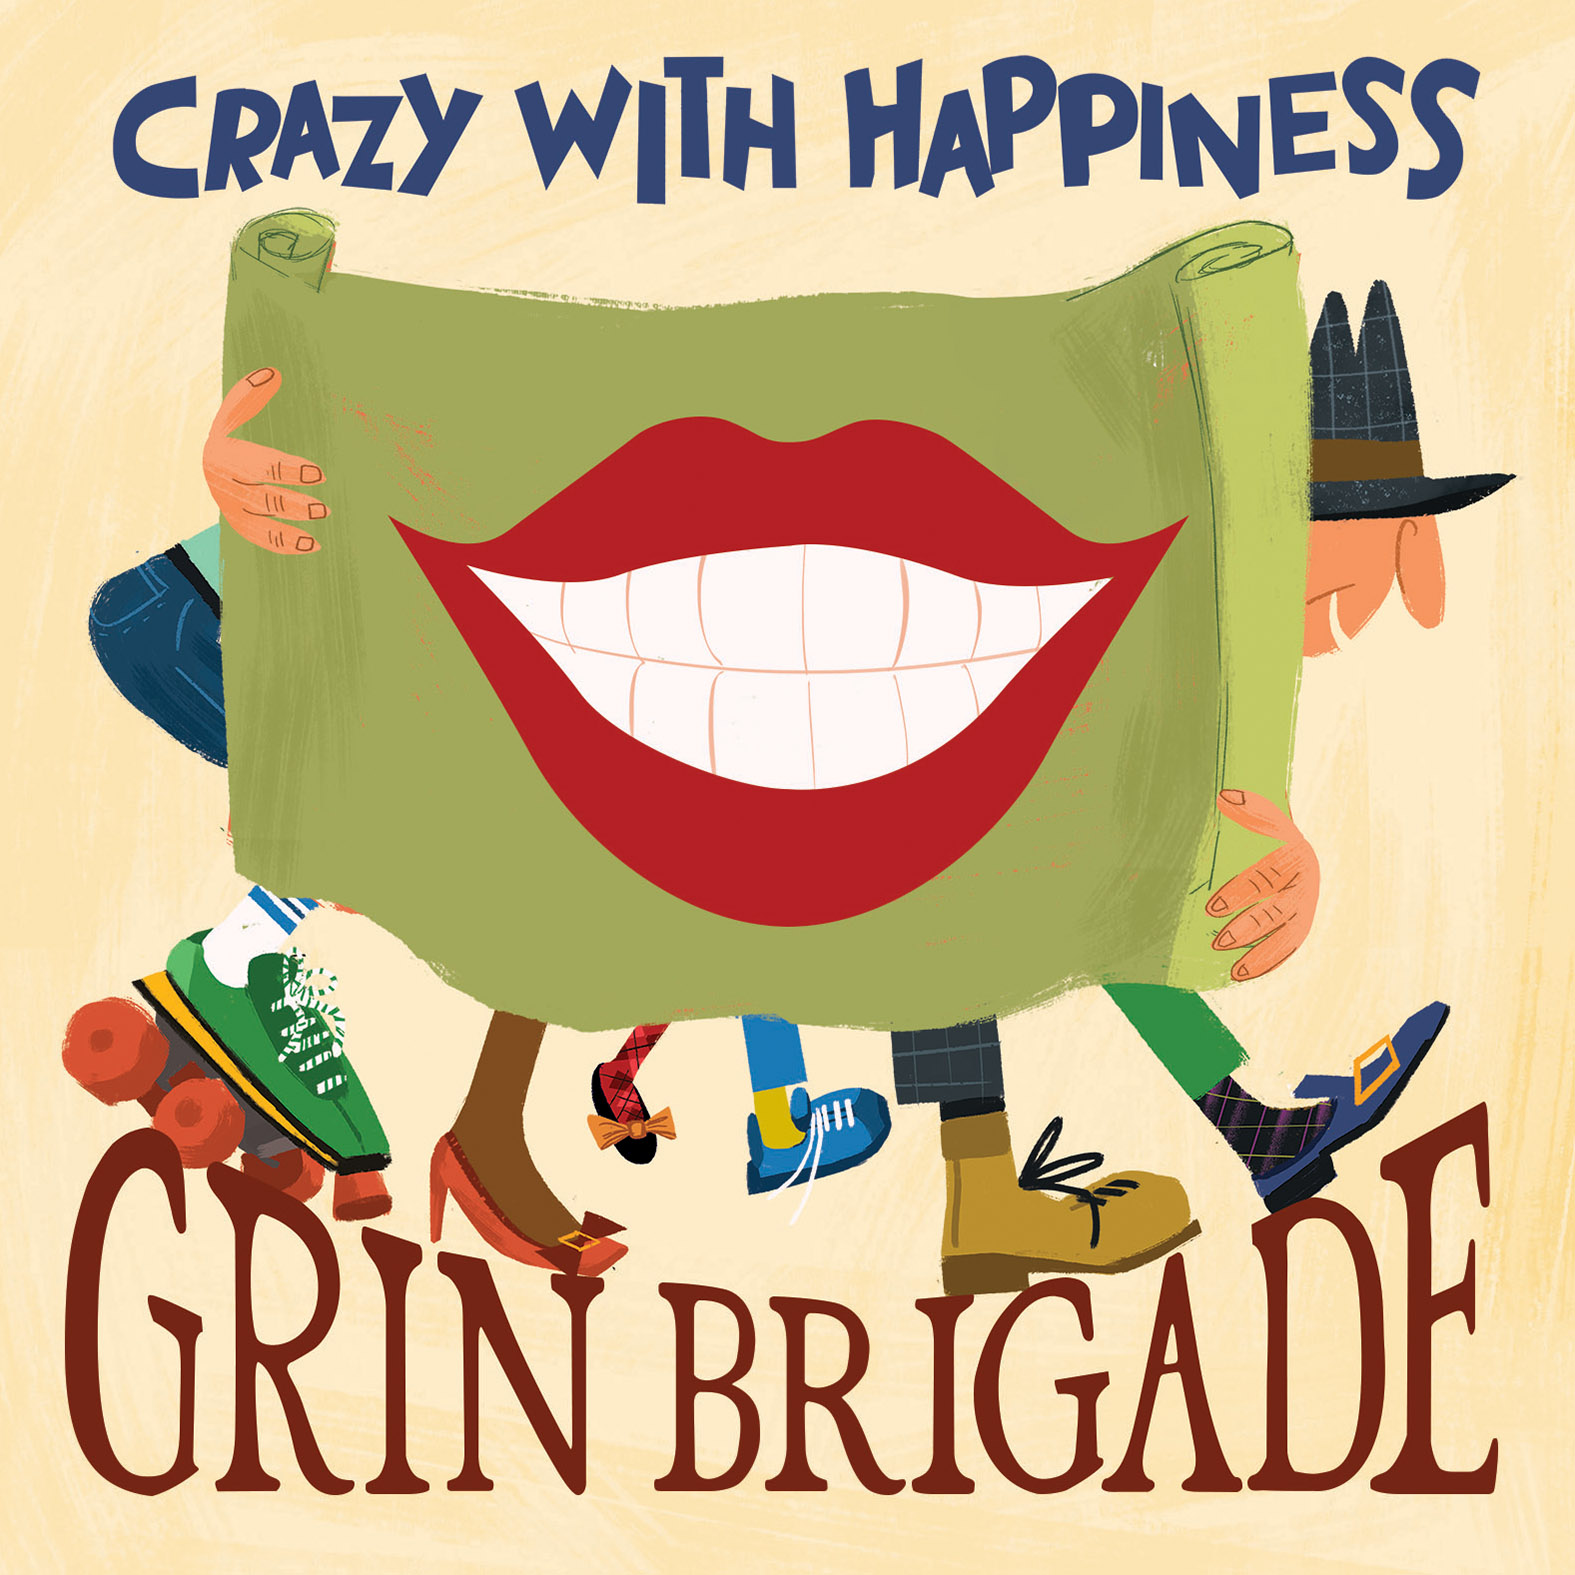 GrinBrigade-CrazyWithHappiness-300dpi